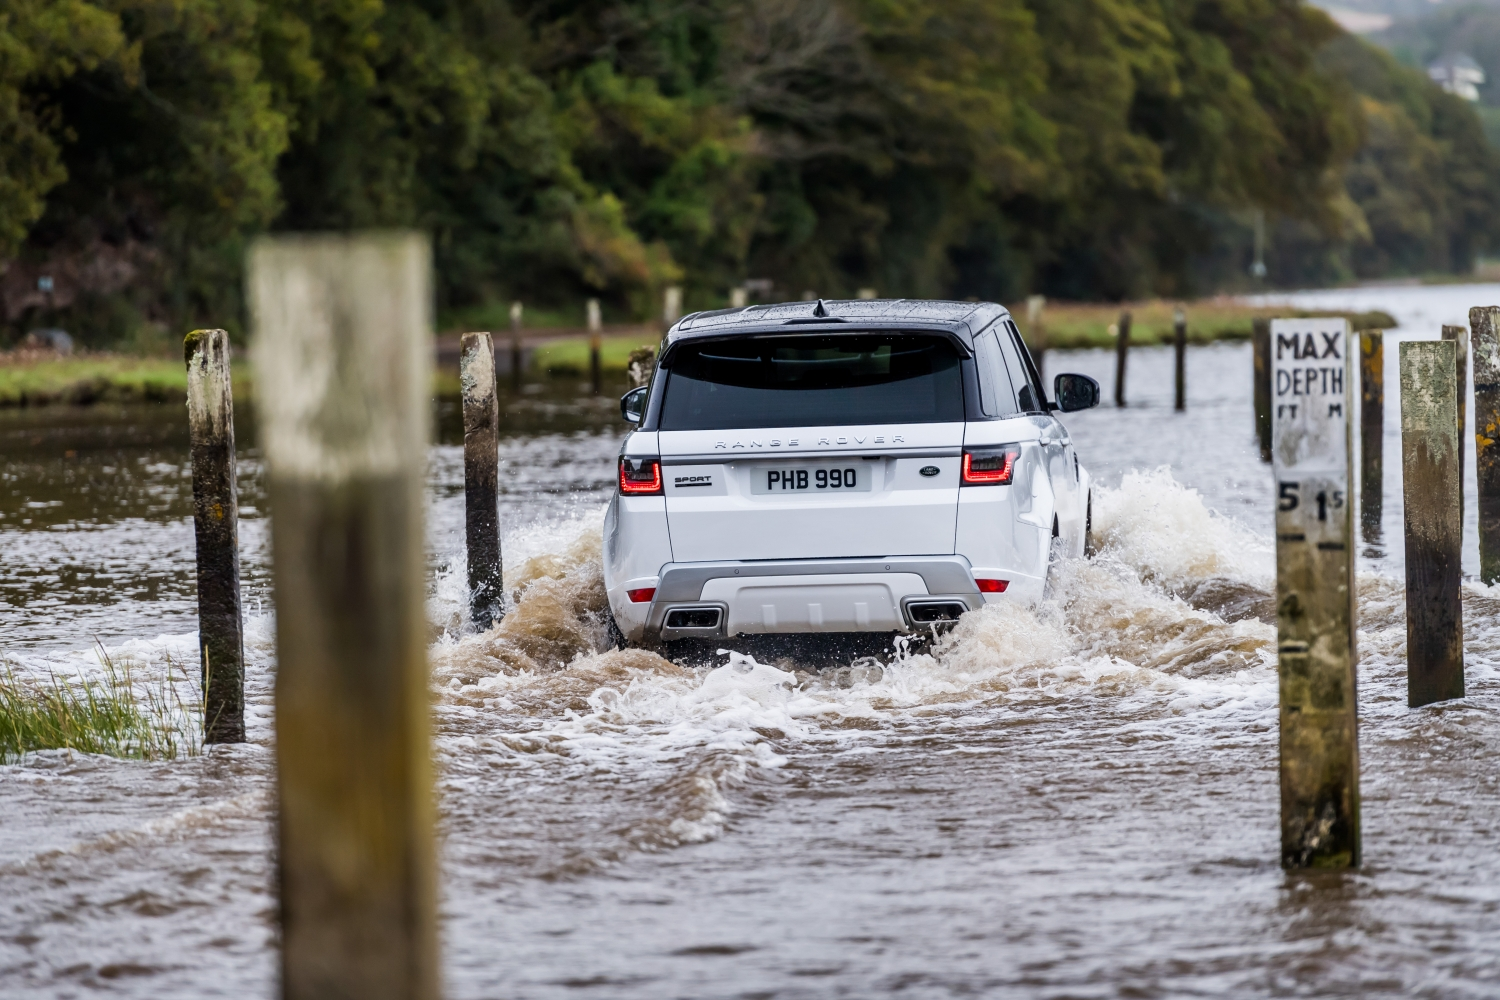 CHALLENGE ACCEPTED: NEW RANGE ROVER SPORT CONQUERS LAND AND SEA IN UNIQUE POINT-TO-POINT